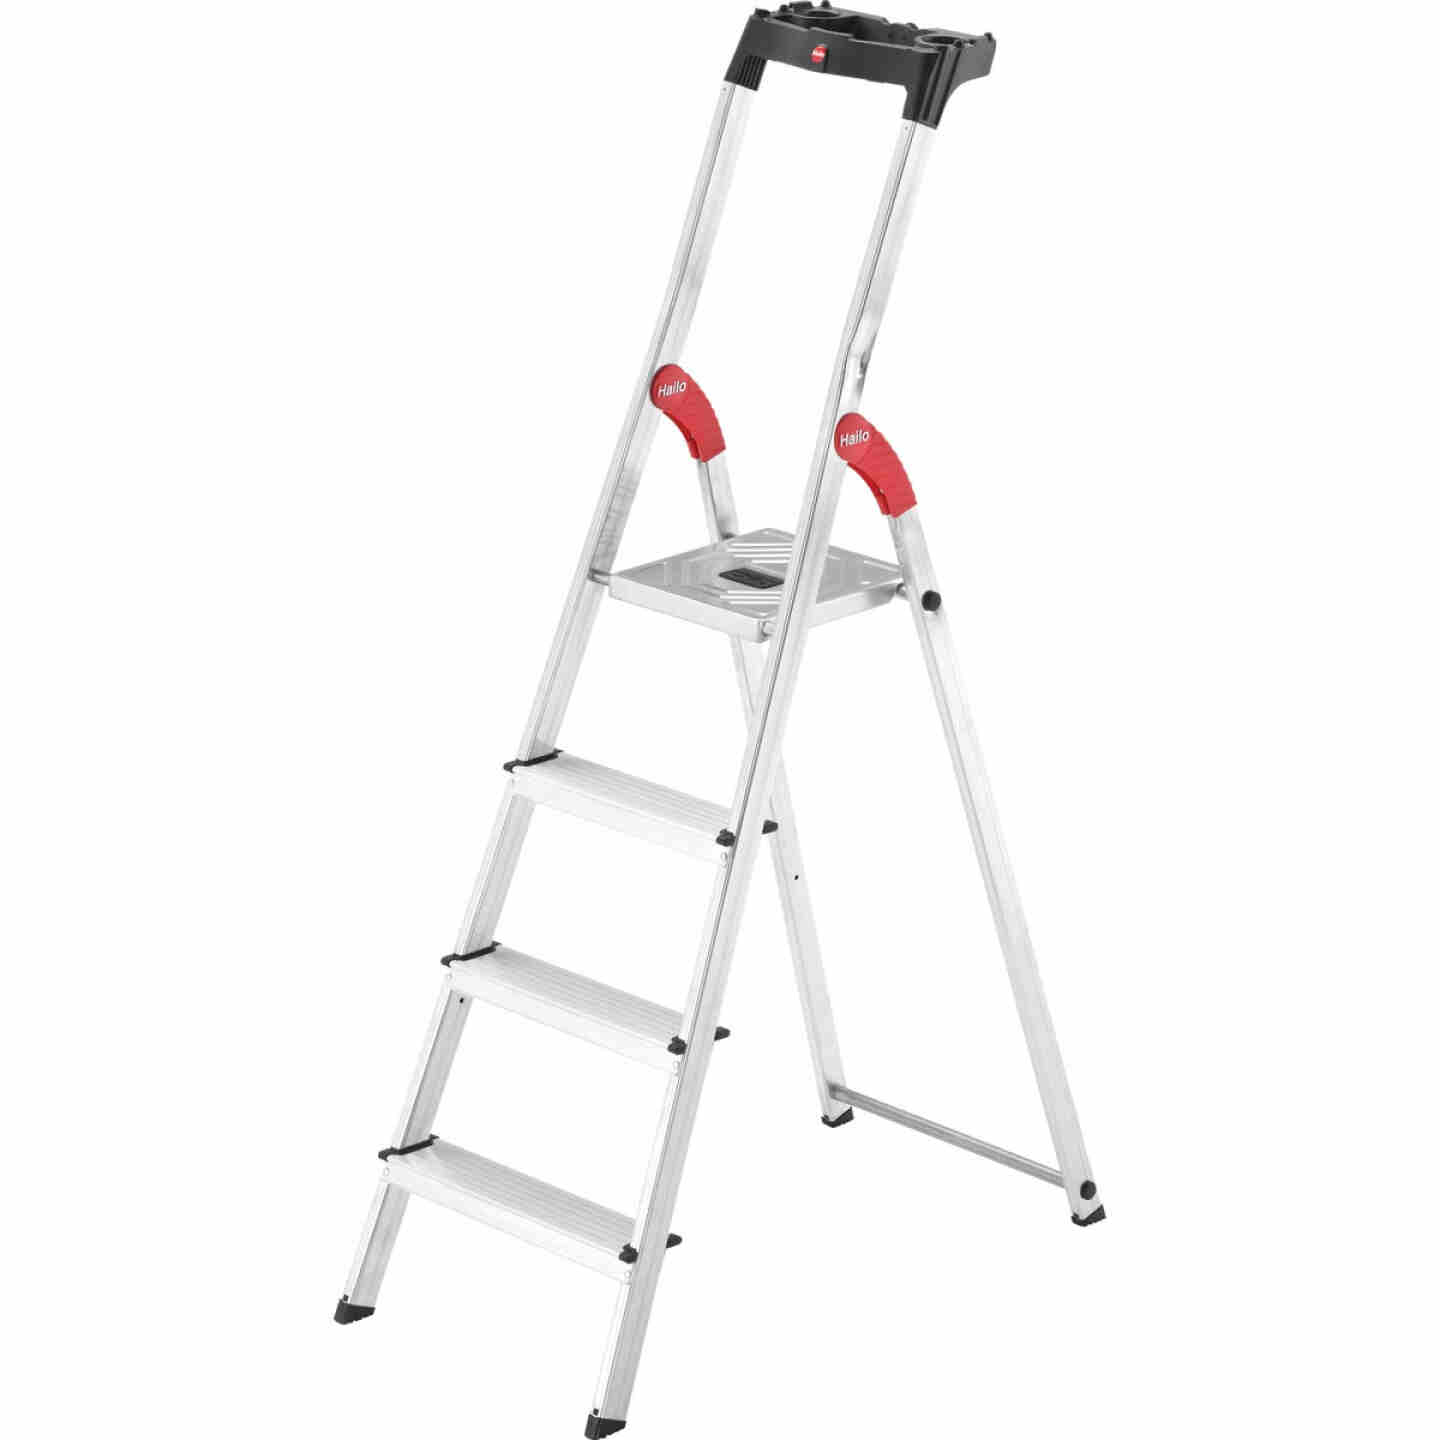 Hailo L60 5 Ft. Aluminum Step Ladder with 330 Lb. Load Capacity Image 1